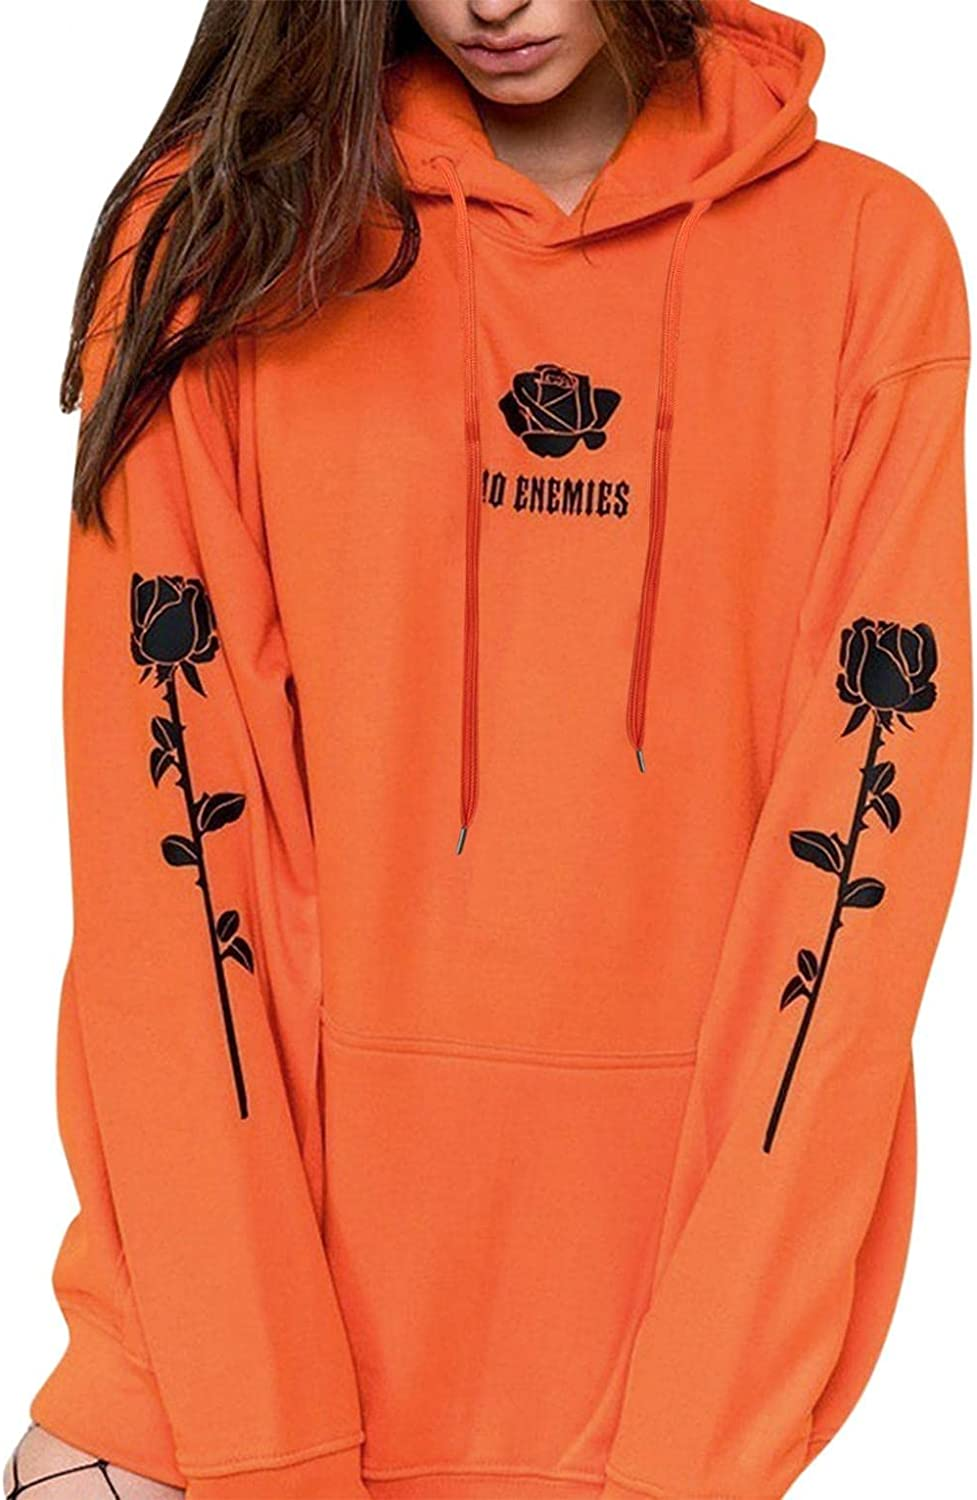 LIEIKIC New product!! Sweatshirts for Women Hoodie Pullover 4 years warranty Graphic Rose Print